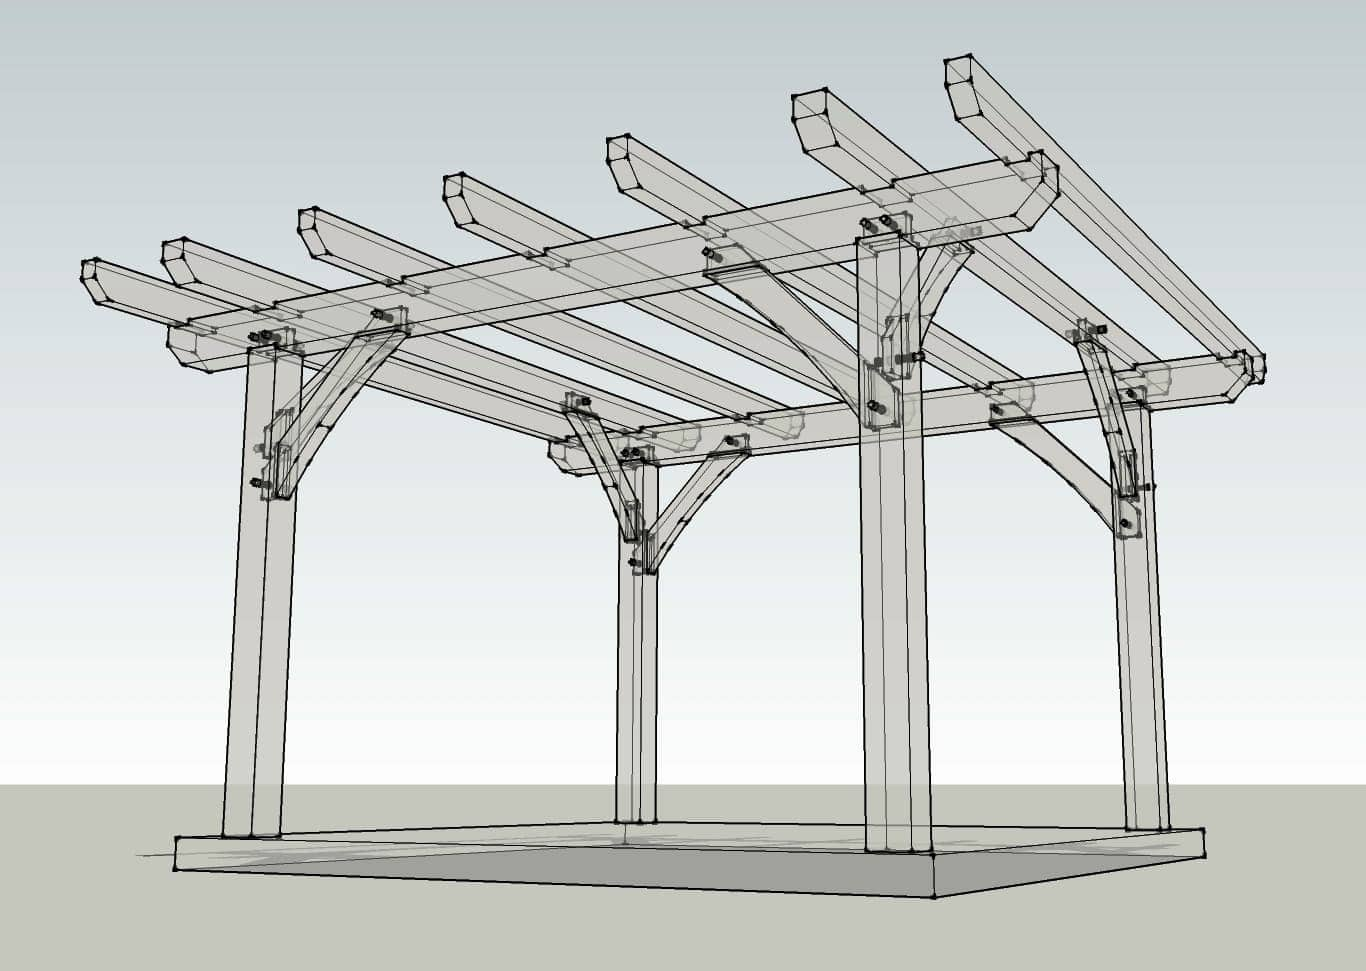 12x12 Timber Frame Pergola - 12x12 Timber Frame Pergola Plan - Timber Frame HQ